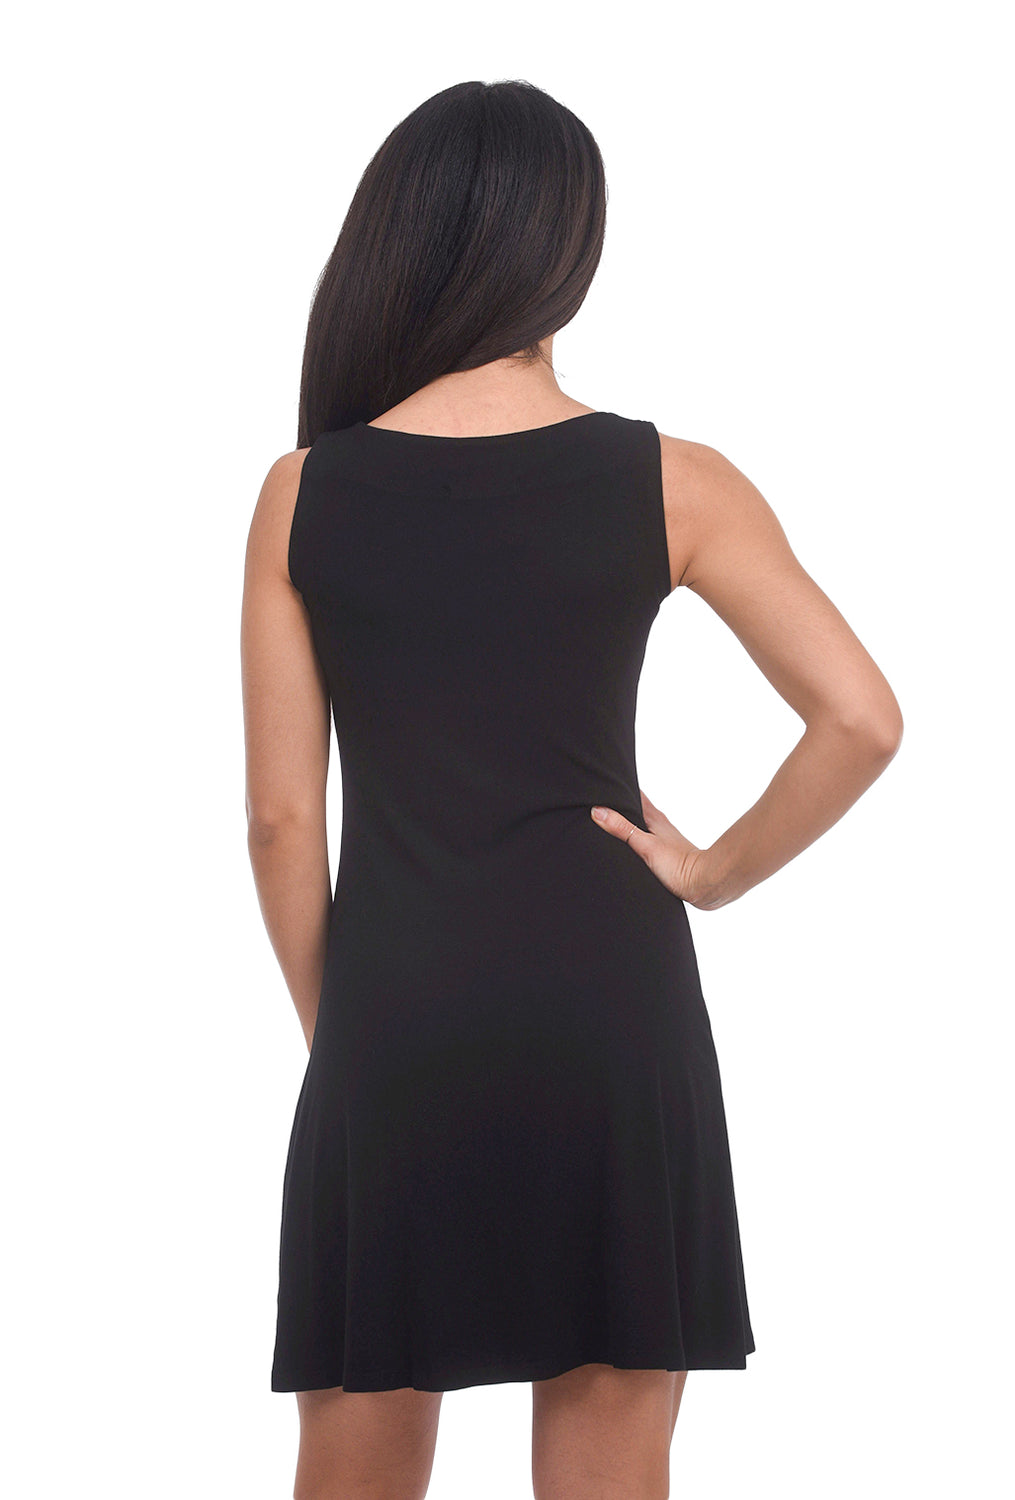 Cut Loose Jersey LBD Dress, Black